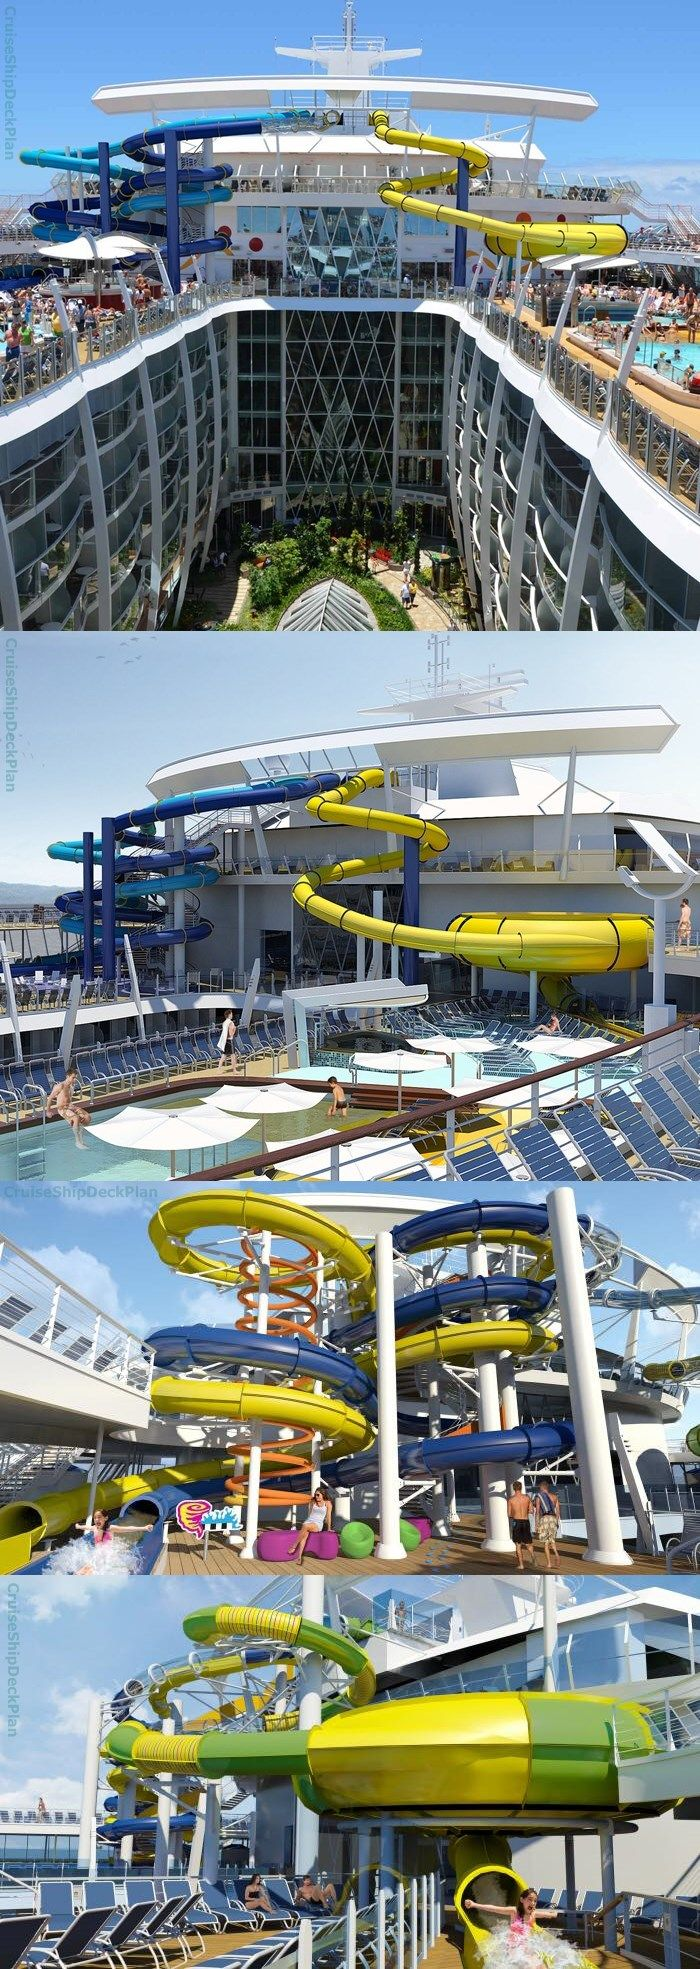 Best 25 royal caribbean ships ideas on pinterest royal best 25 royal caribbean ships ideas on pinterest royal caribbean cruise royal cruise line and caribbean cruises 2016 baanklon Gallery